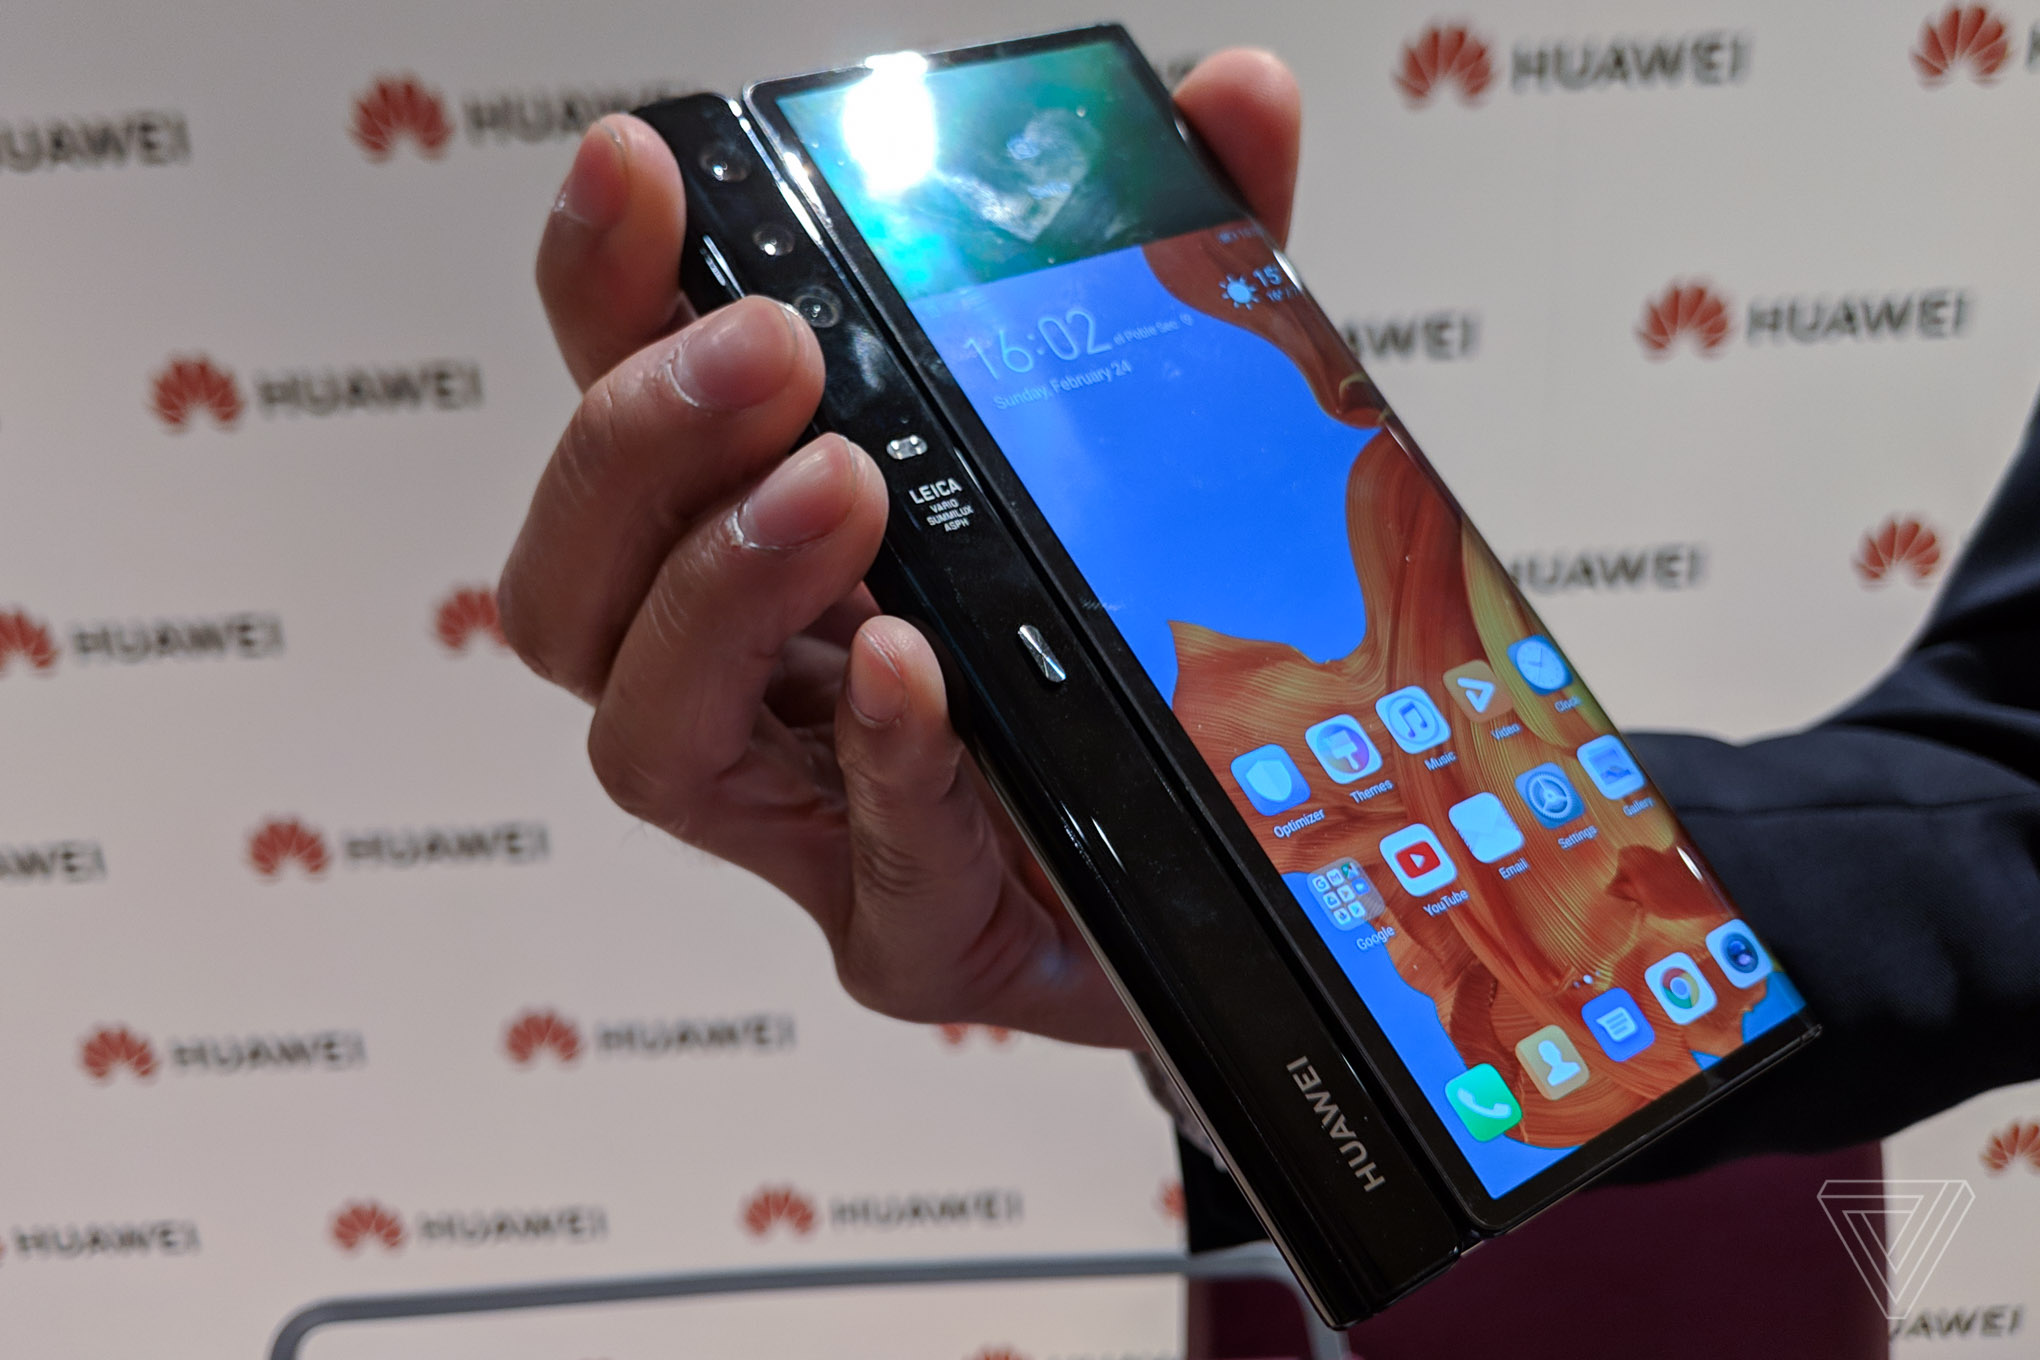 Huawei's Mate X foldable phone is a thinner 5G rival to the